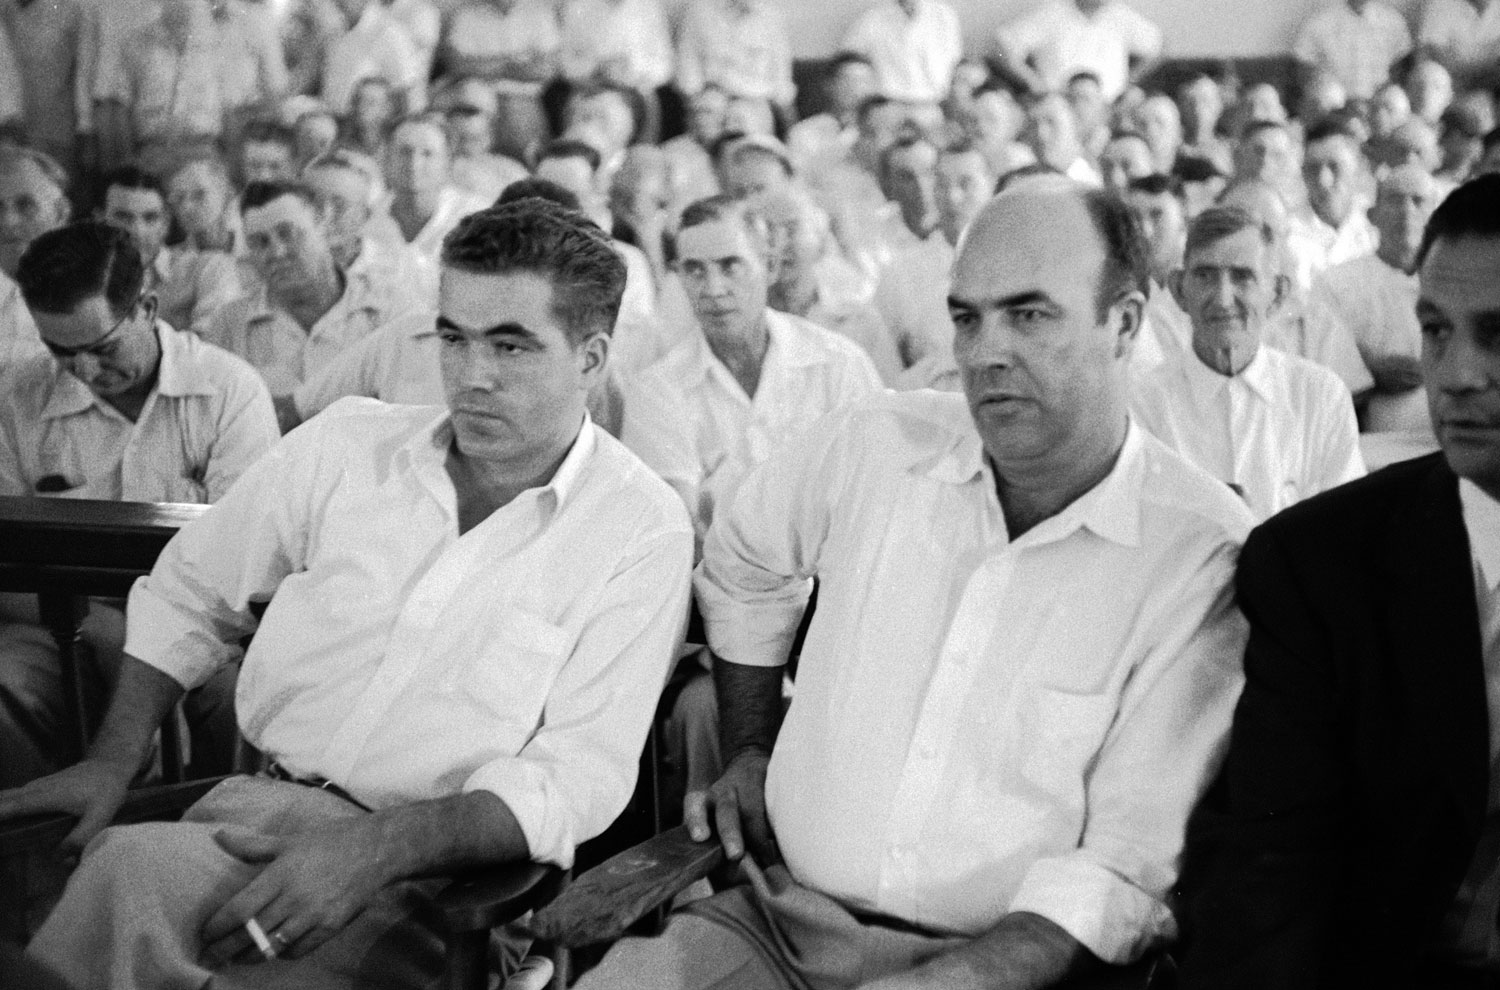 Defendants Roy Bryant, left, and J.W. Milam during their trial for the kidnapping and murder of Emmett Till.